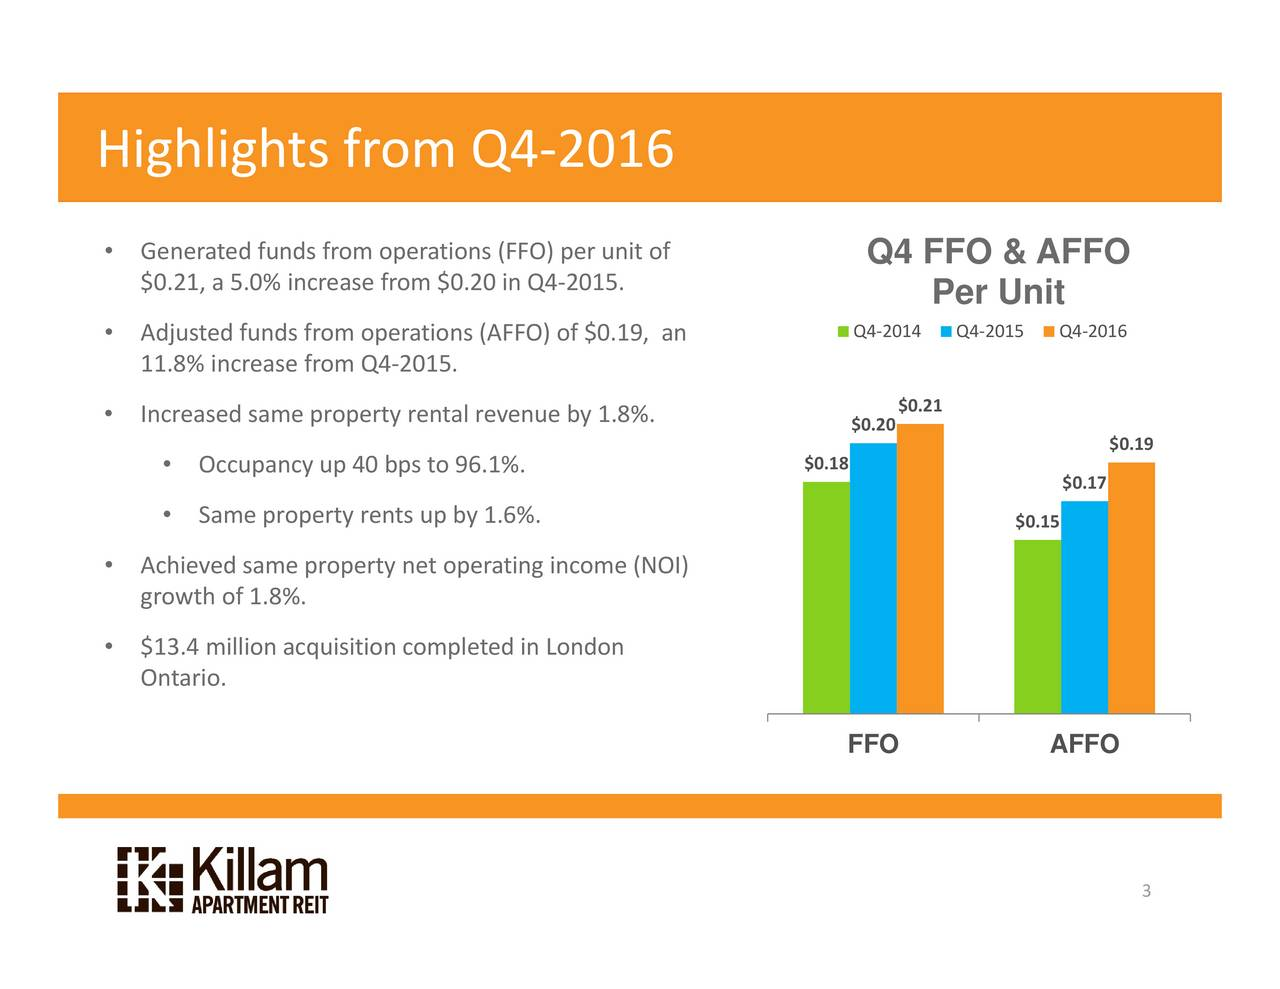 $0.19 016 Q4 $0.17 $0.15 015 Q4 Per Unit $0.21 Q4 FFO & AFFO Q4 $0.20 FFO AFFO $0.18 f NOI) nit .8%. per2015.0.19, y 016   f ncome ondon 4 n FF) (AFFO) .6%. 4  even96.1%by 0.20 to  perating 2015. ental p et ompleted peations  ps from peations 0 ents rom p increaserom property roperty property cquisition unds unds ame  ame.8%. .0% ncrease f million Occupancy Generateddj11.8% Increased Achgrowth$13Ontario. Highlightslights from Q4-215